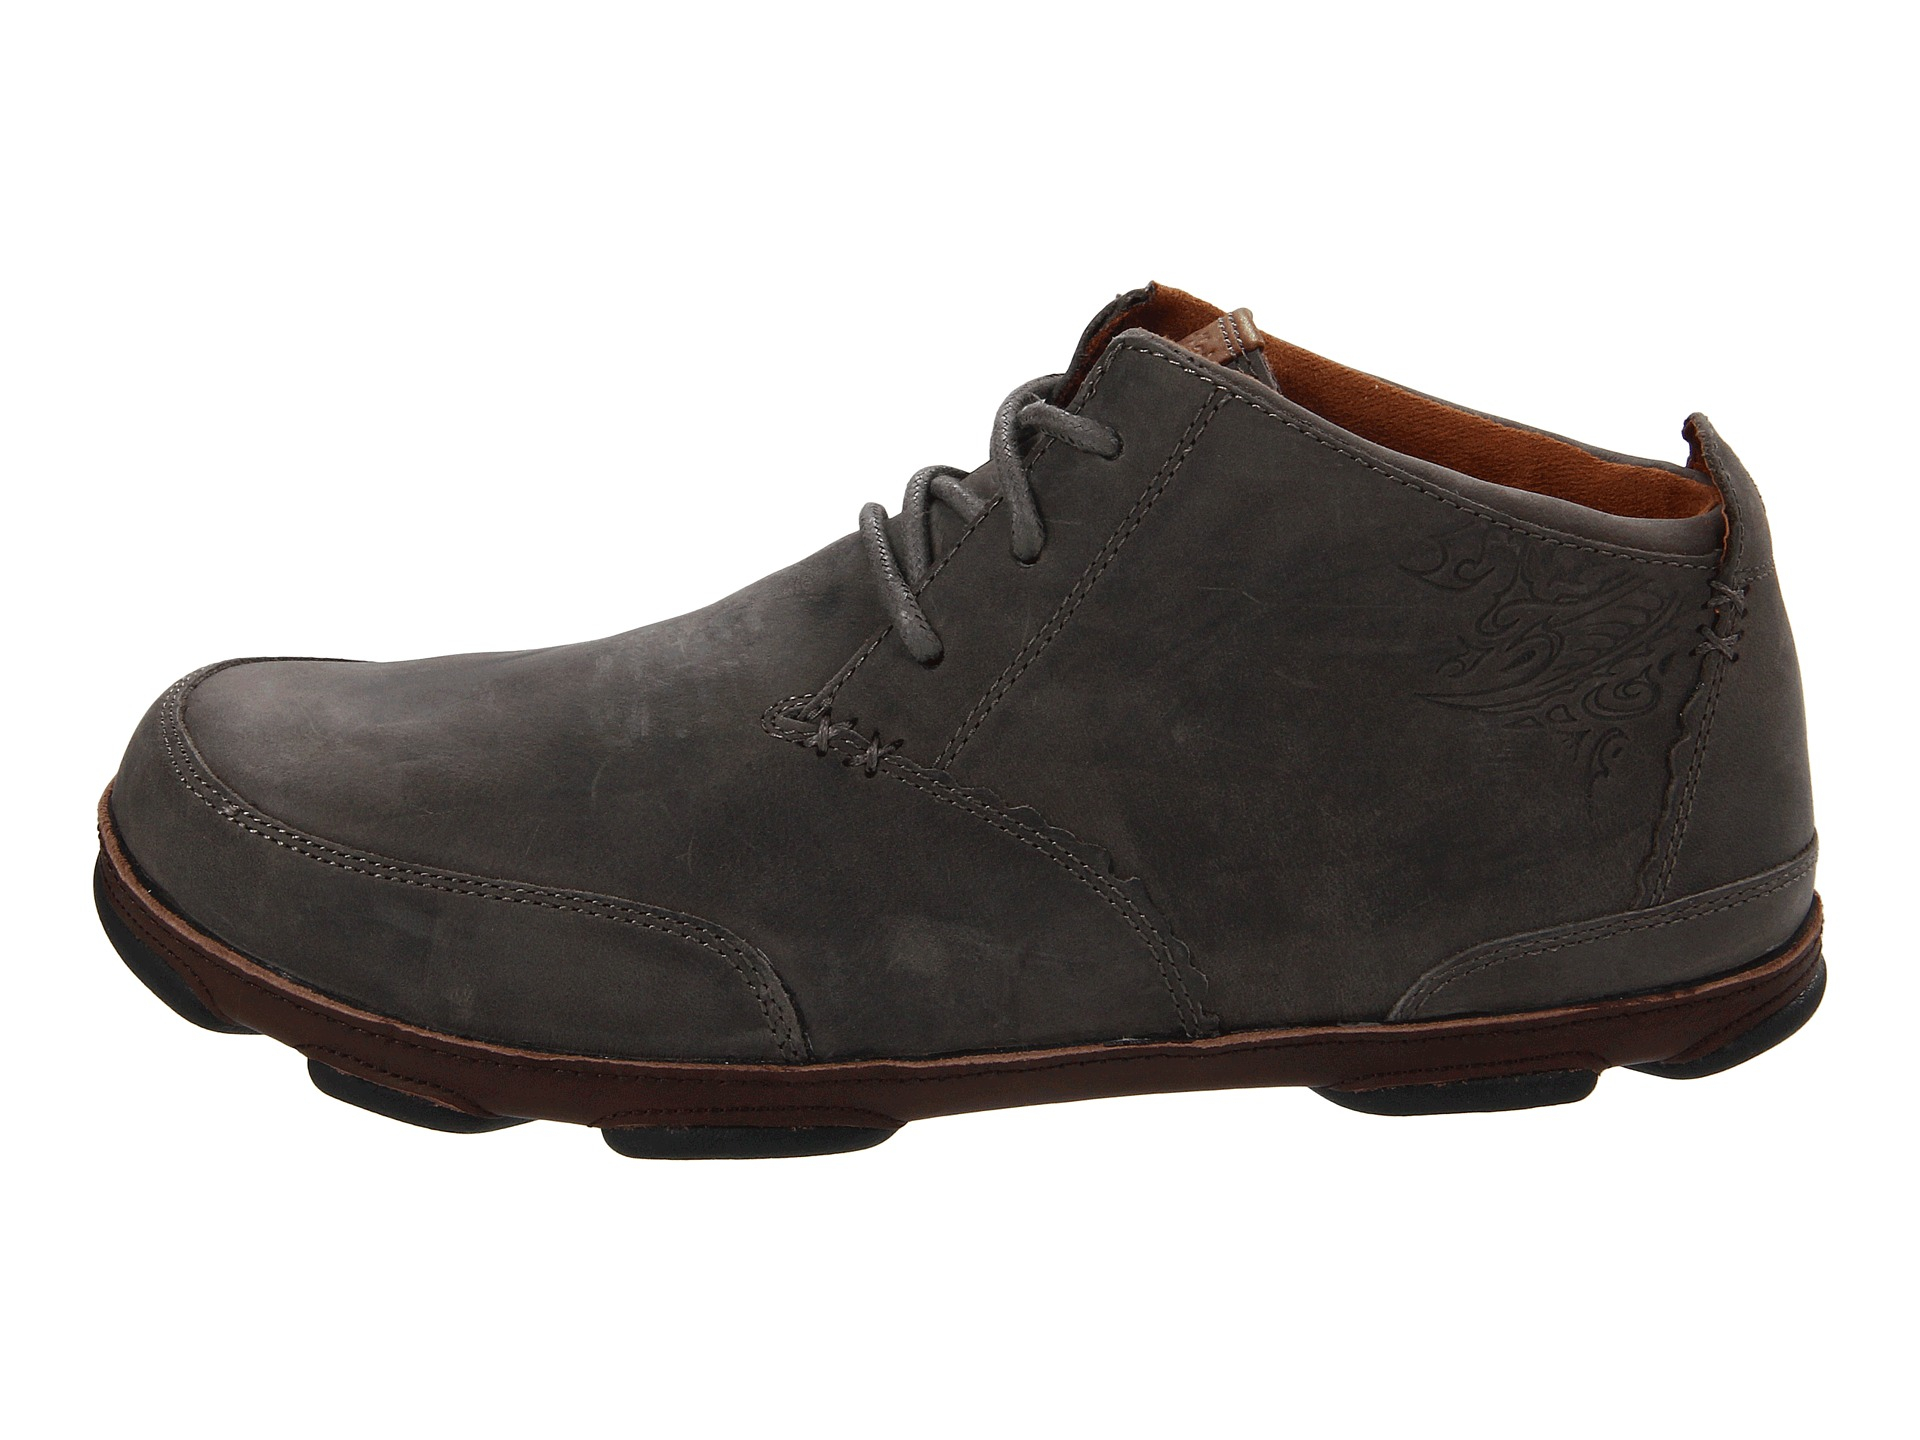 kamuela men Wide ankle opening and roomy toe box, embossed polynesian moko art detail and embossed leather tab detail outsole all-weather rubber outsole with full-grain leather foxing and non-marking rubber traction pods.